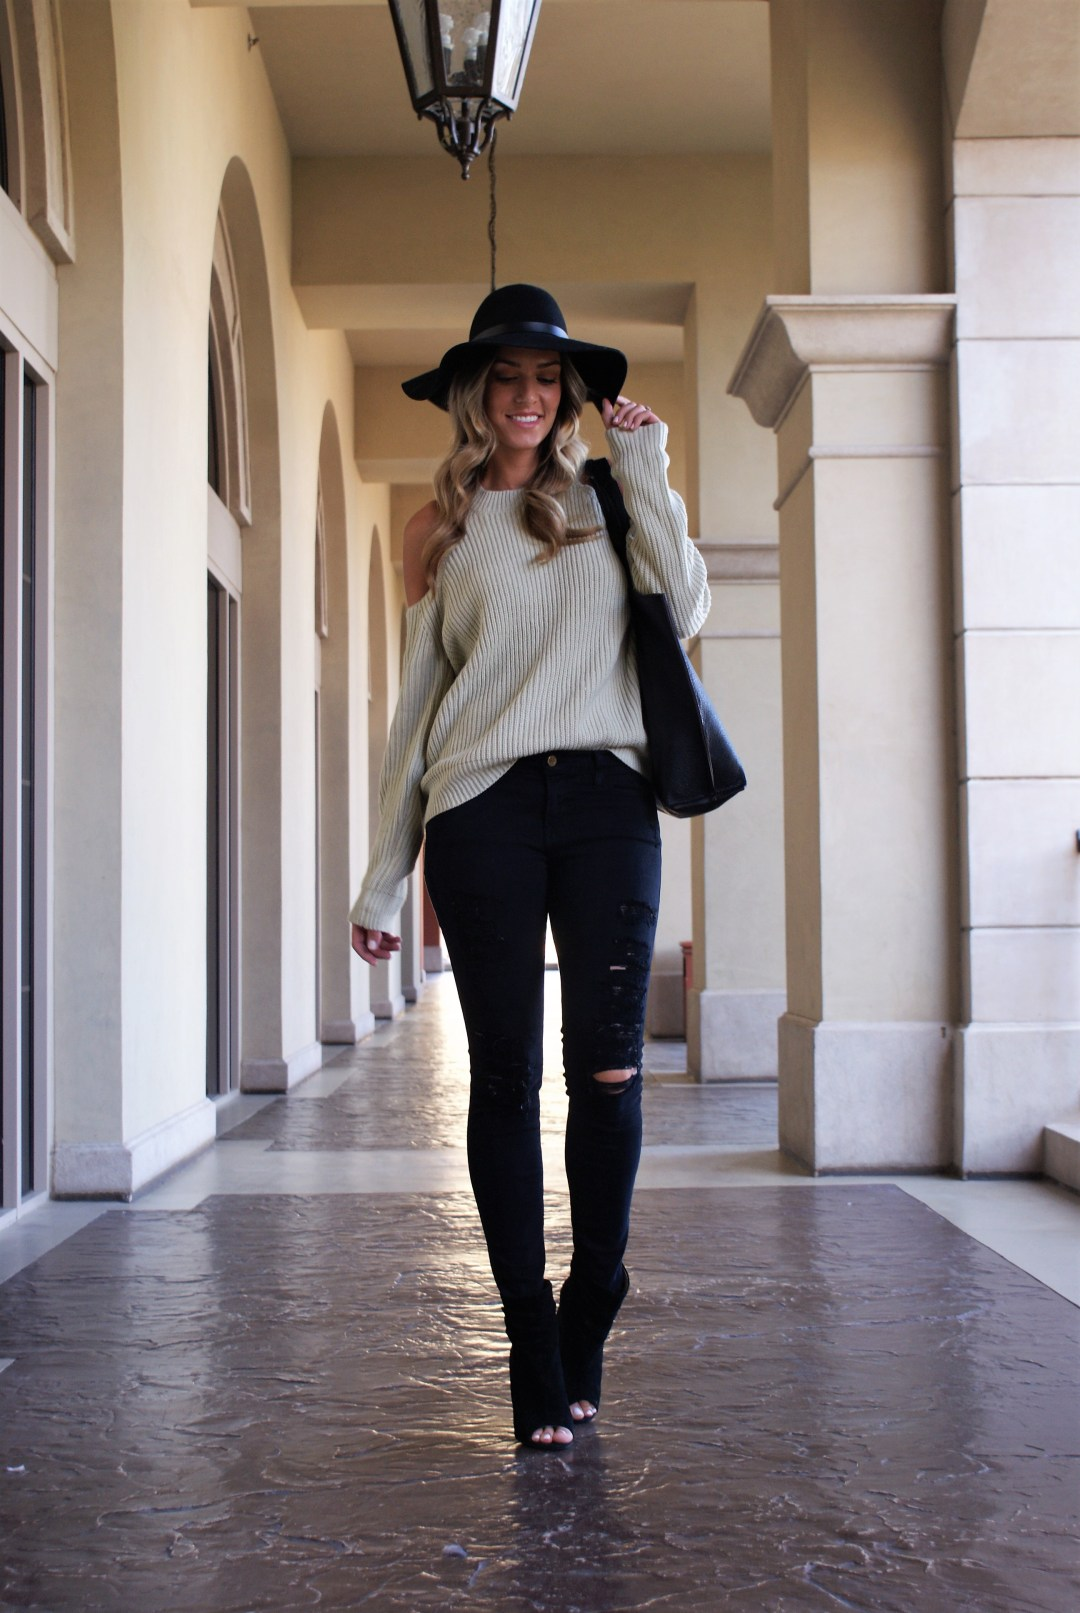 The Budget Friendly Sweaters I'm Loving For Fall